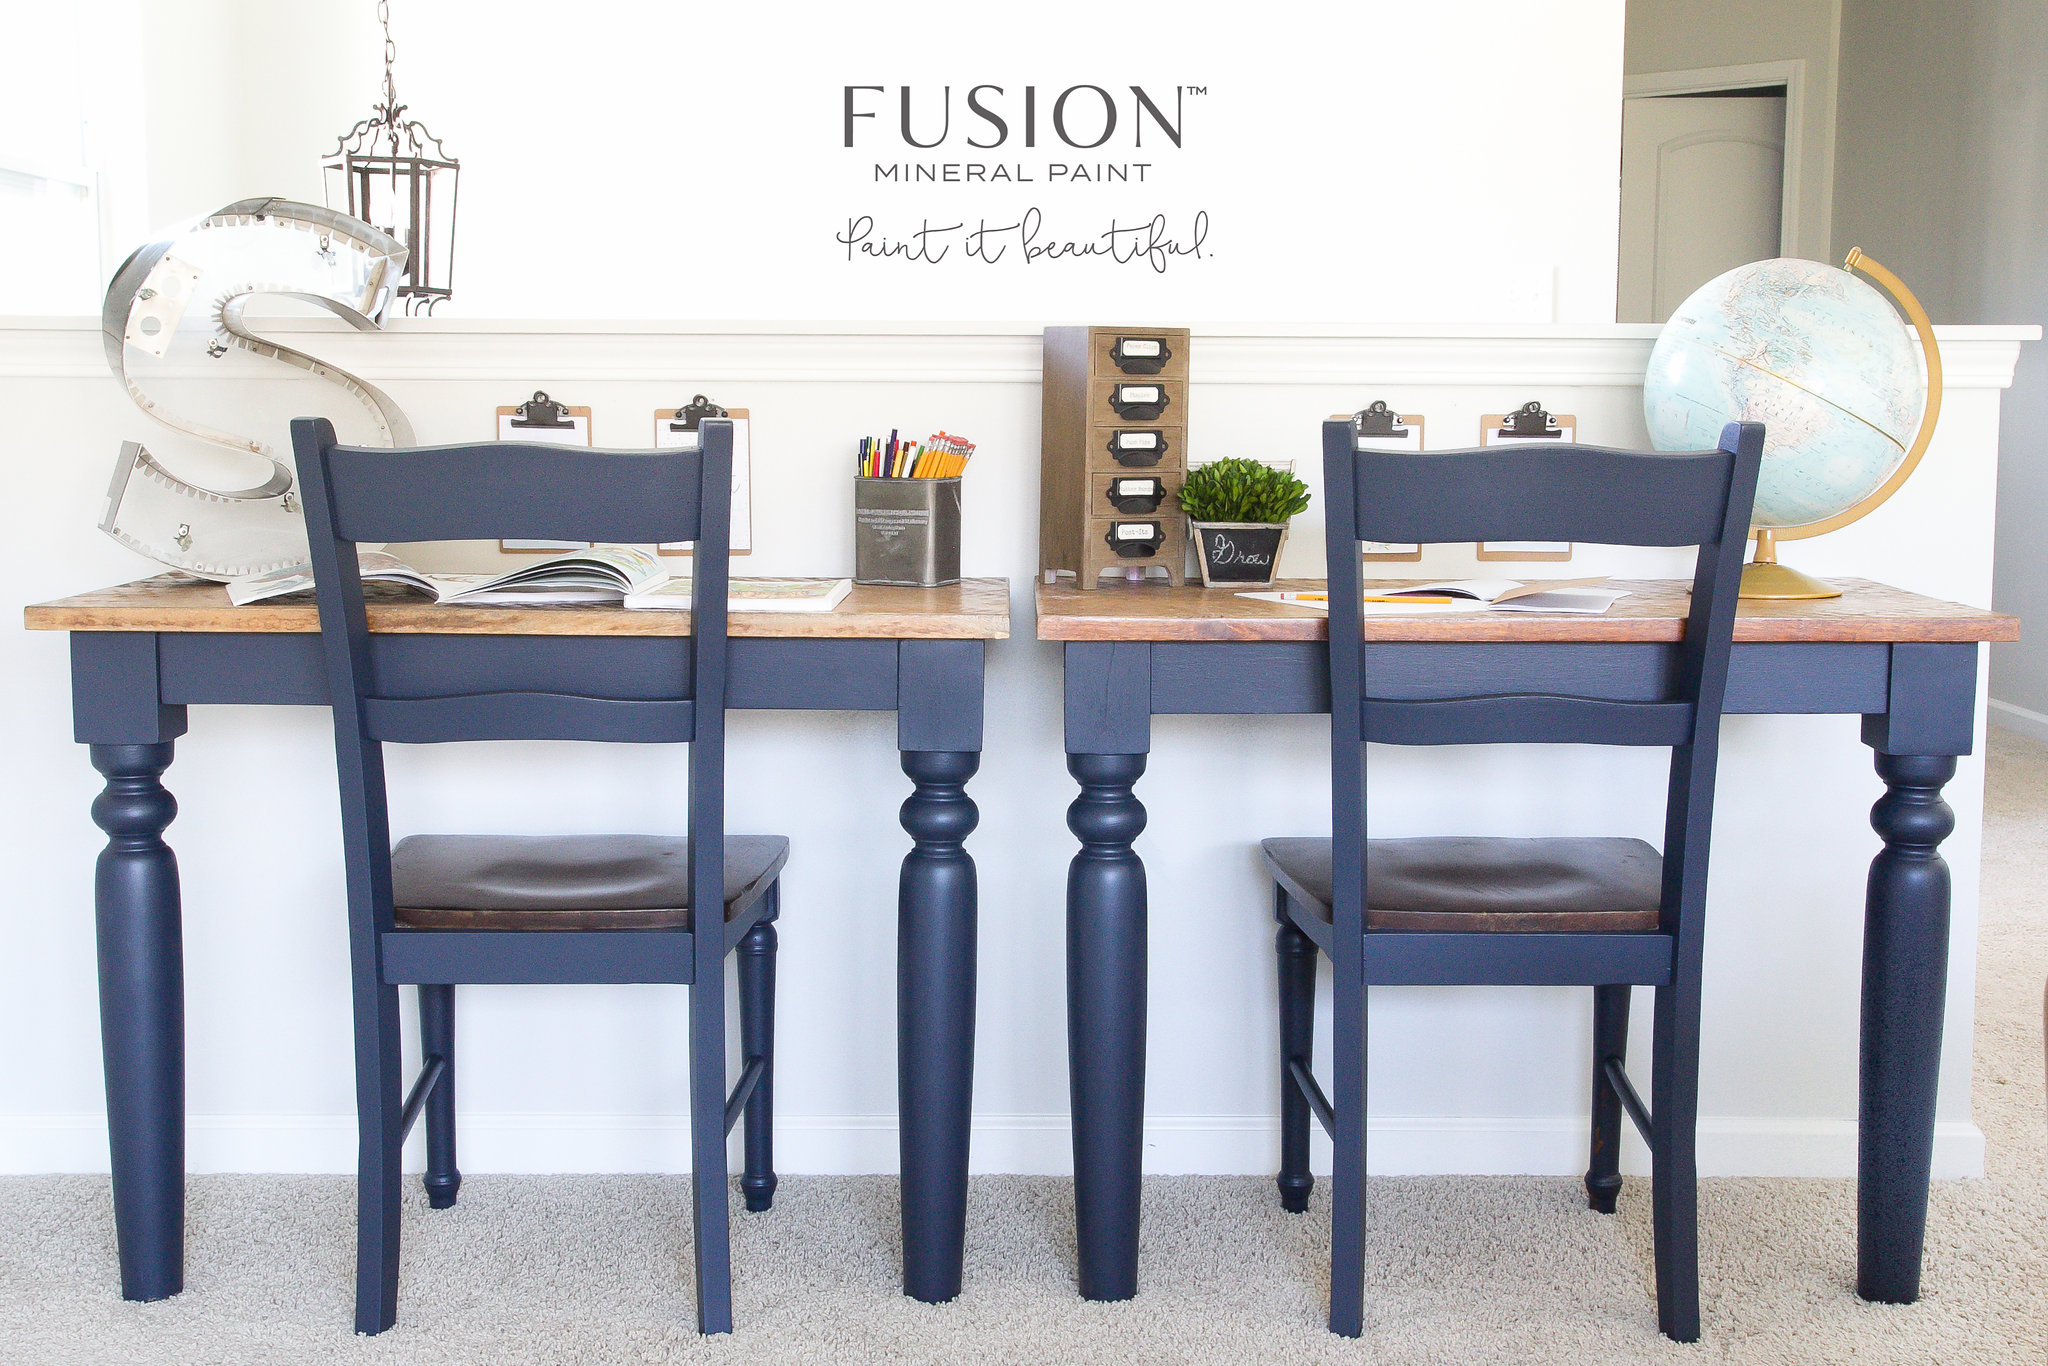 Shabby Chic to Mid Century Modern Sleek • Fusion™ Mineral Paint